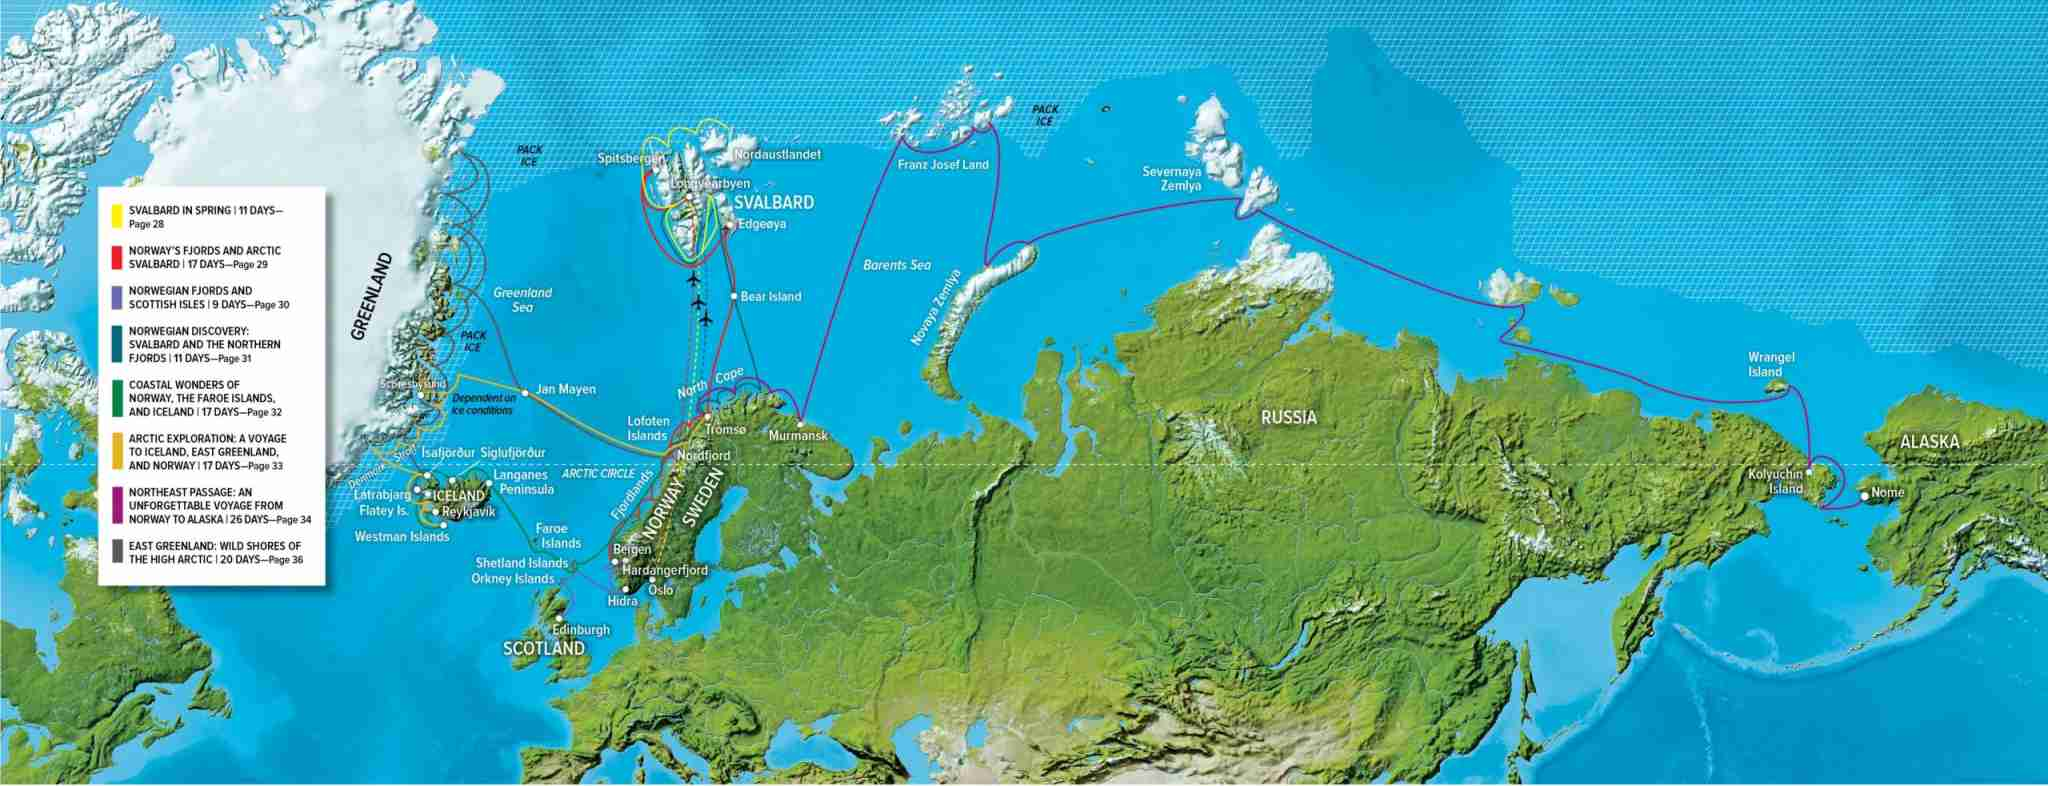 National Geographic Endurance will operate trips deep into the Arctic during the summer of 2020.